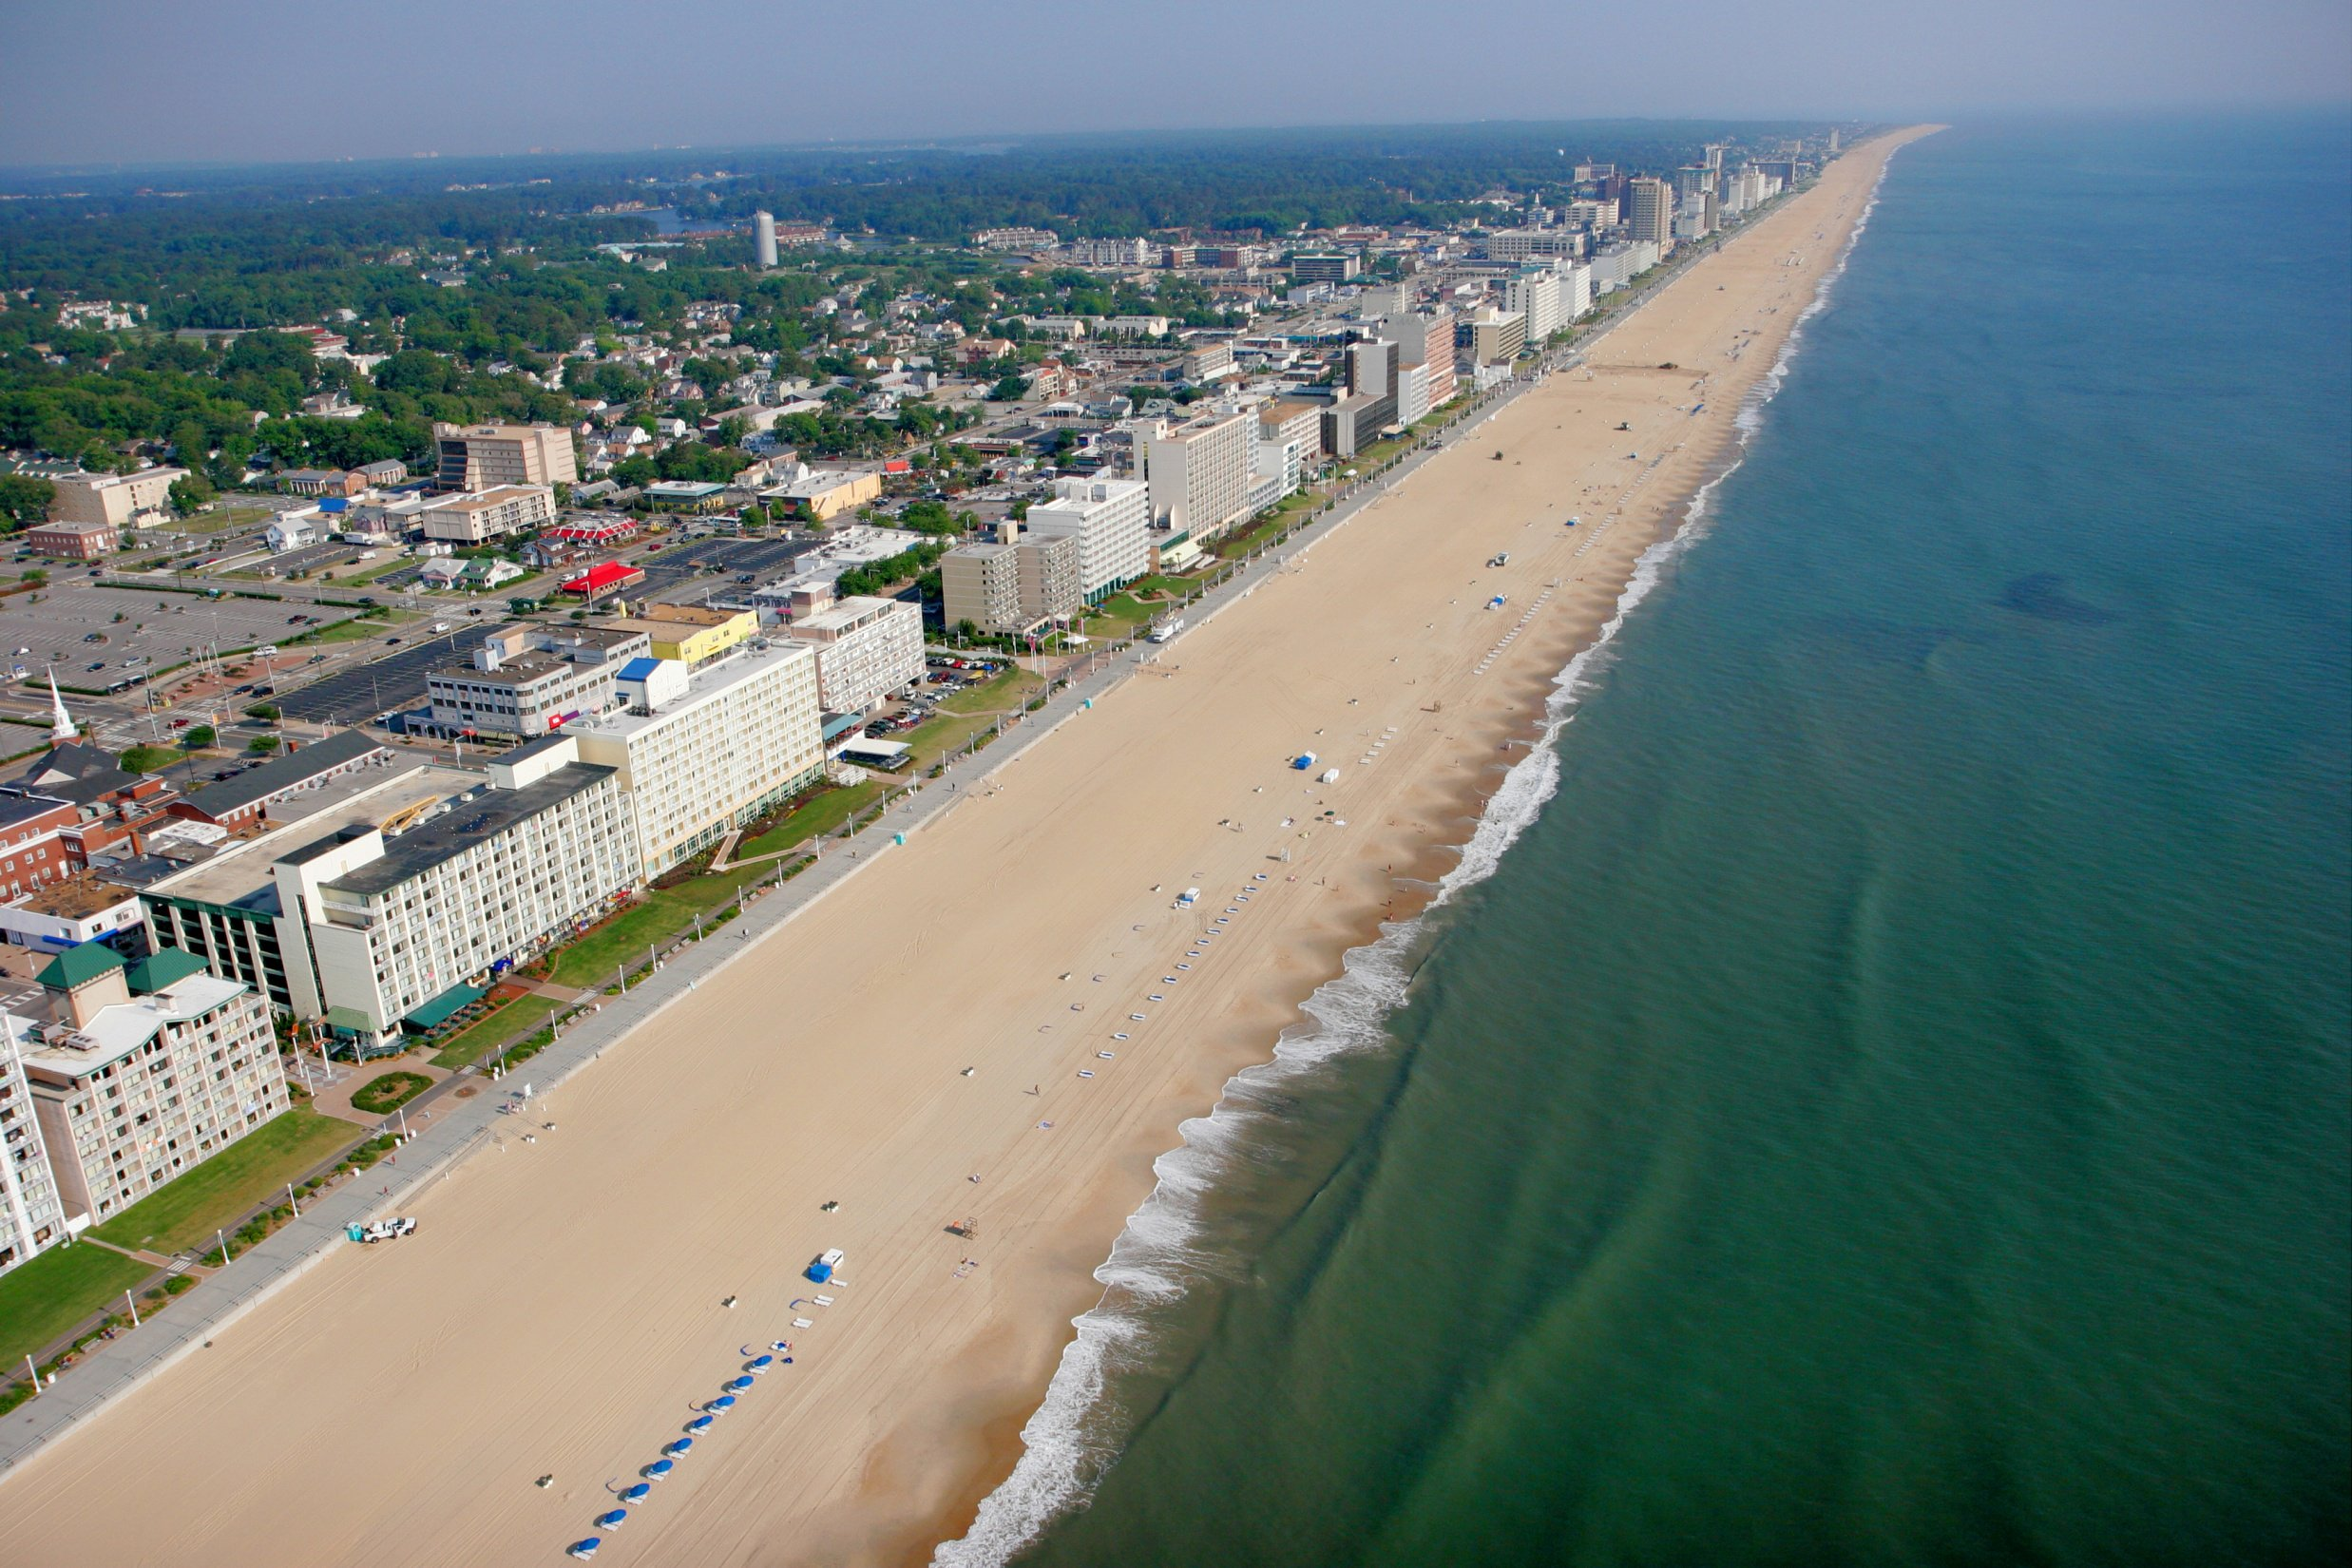 Virginia Beach Is One Of The State S Most Por Destinations Photo By Cvb